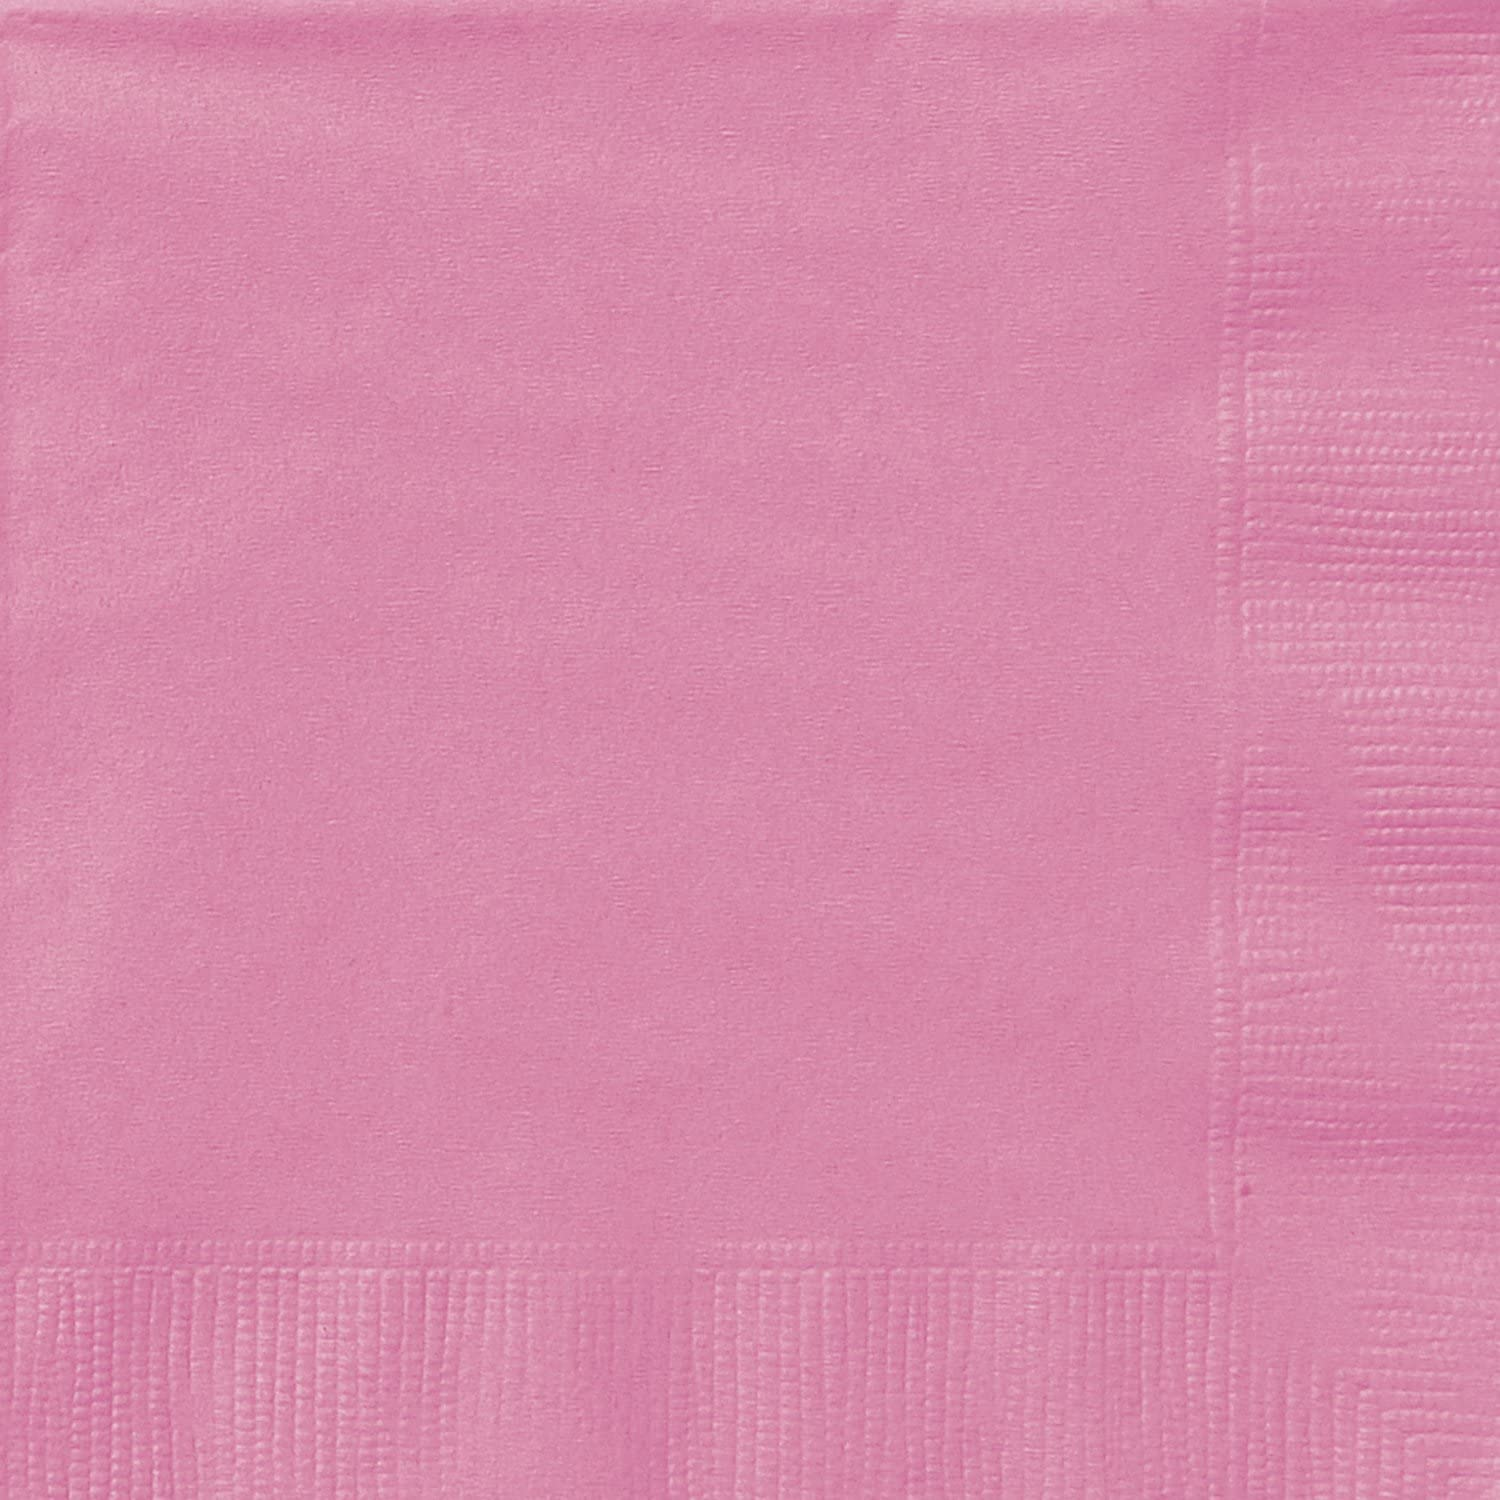 Hot Pink Beverage Napkins, 20ct